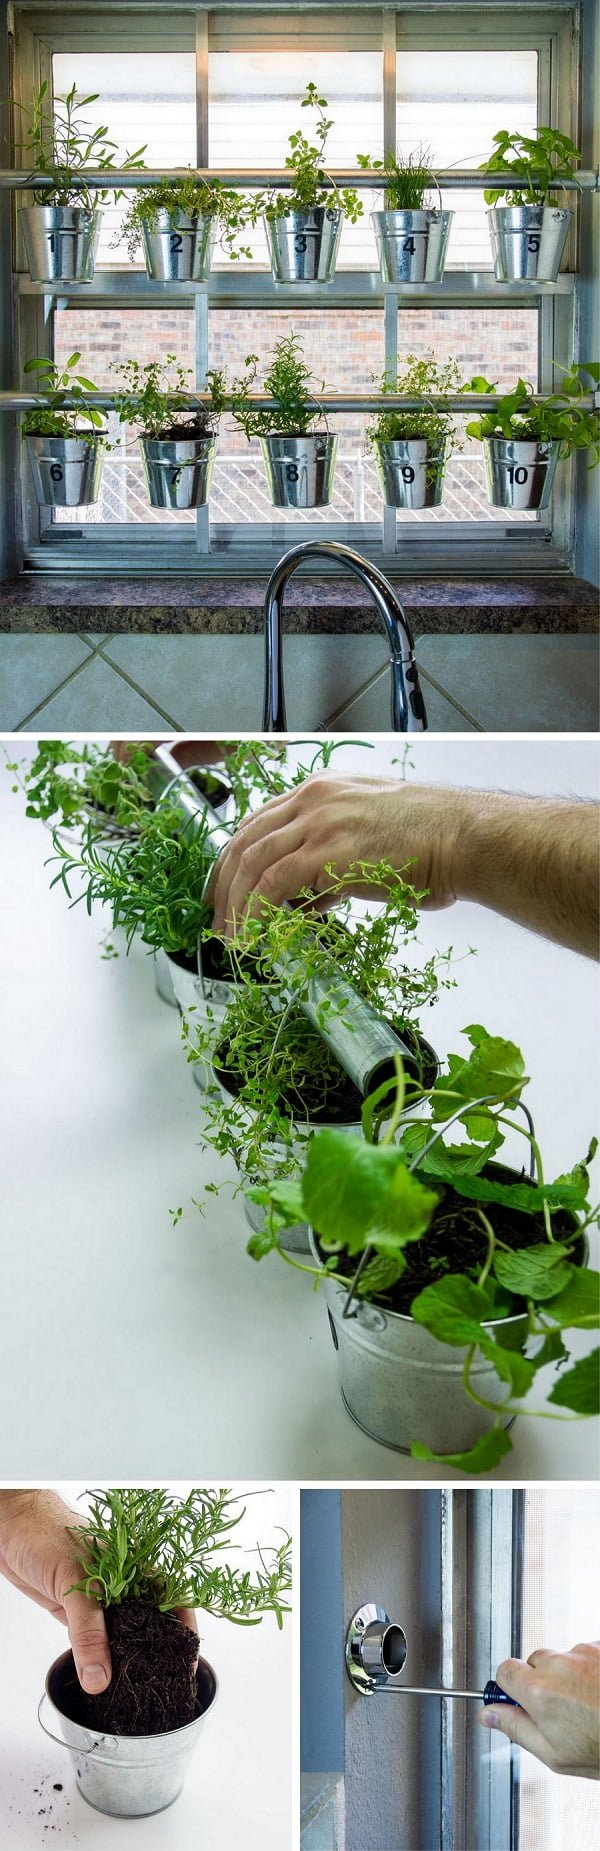 Check out how to build a DIY window mounted herb garden